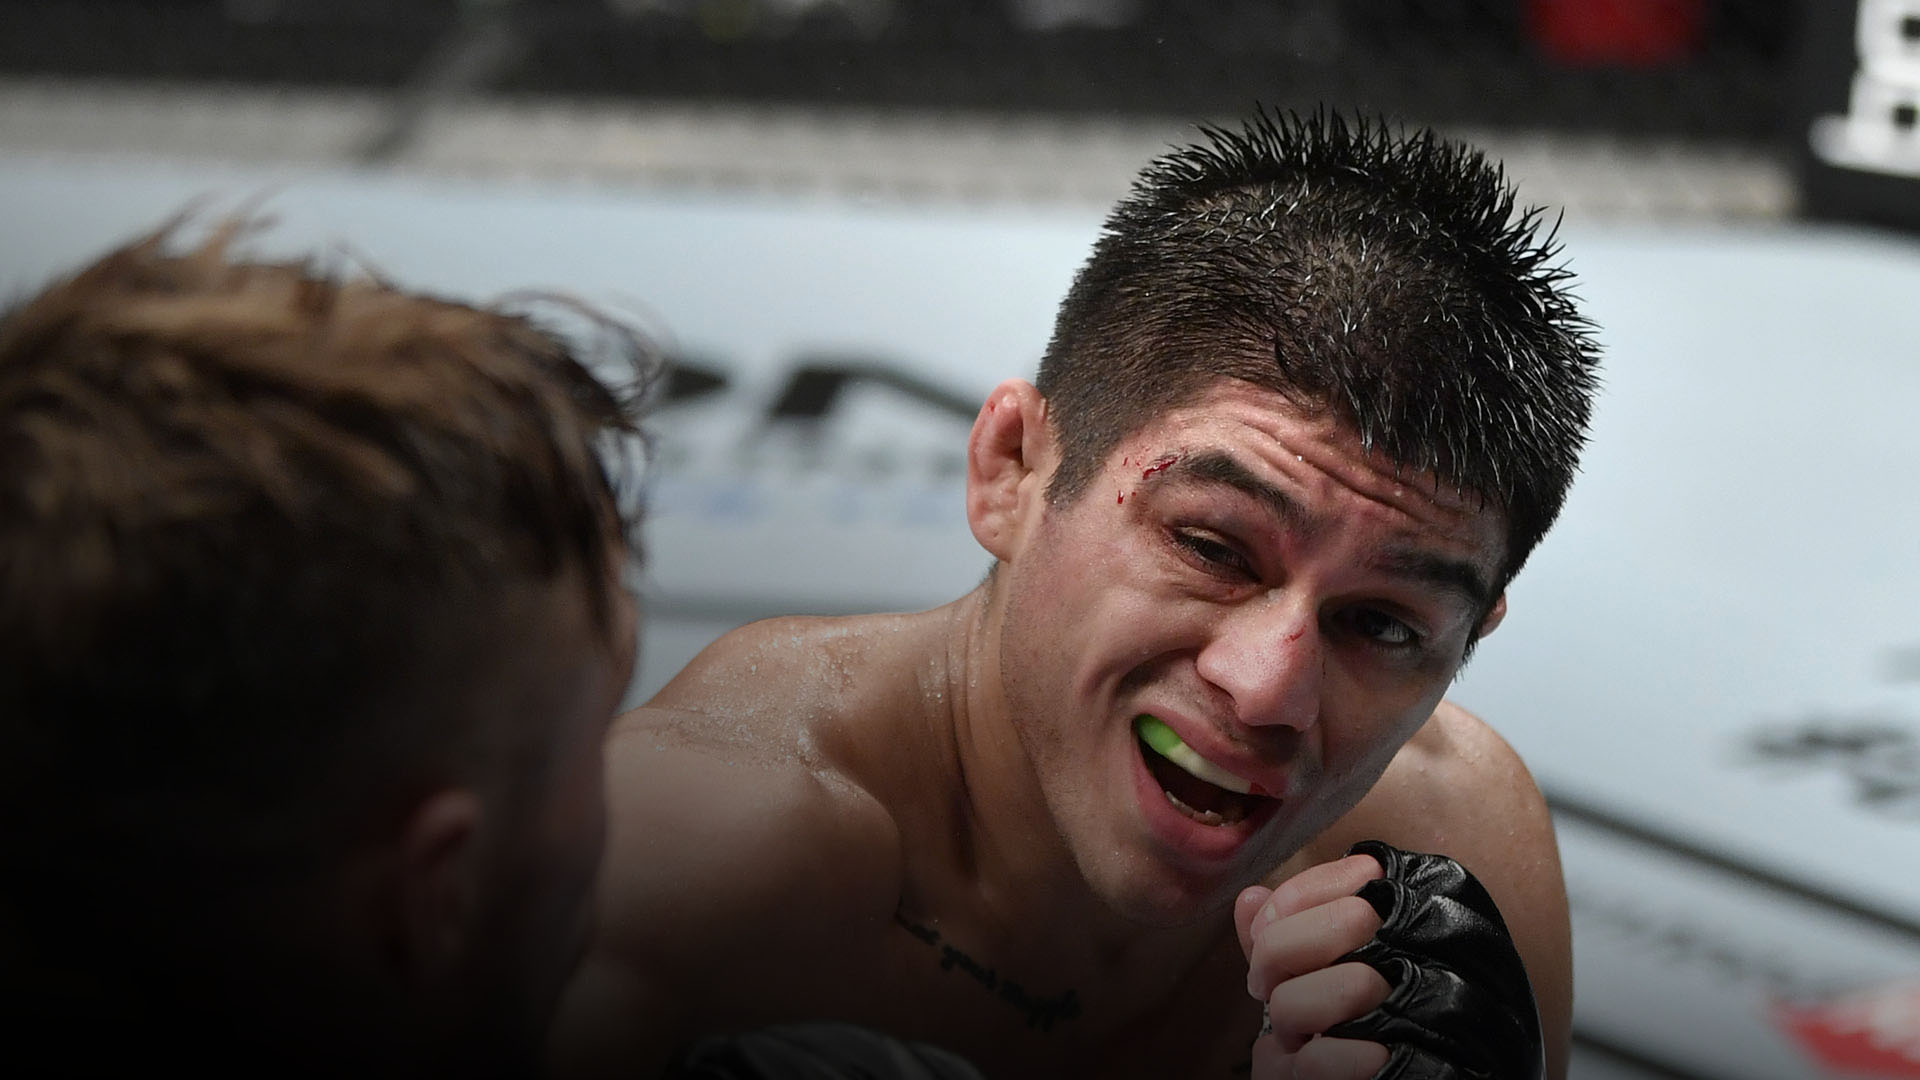 John Castaneda punches Nathaniel Wood of England in their bantamweight fight during the UFC Fight Night event inside Flash Forum on UFC Fight Island on July 26, 2020 in Yas Island, Abu Dhabi, United Arab Emirates. (Photo by Jeff Bottari/Zuffa LLC)